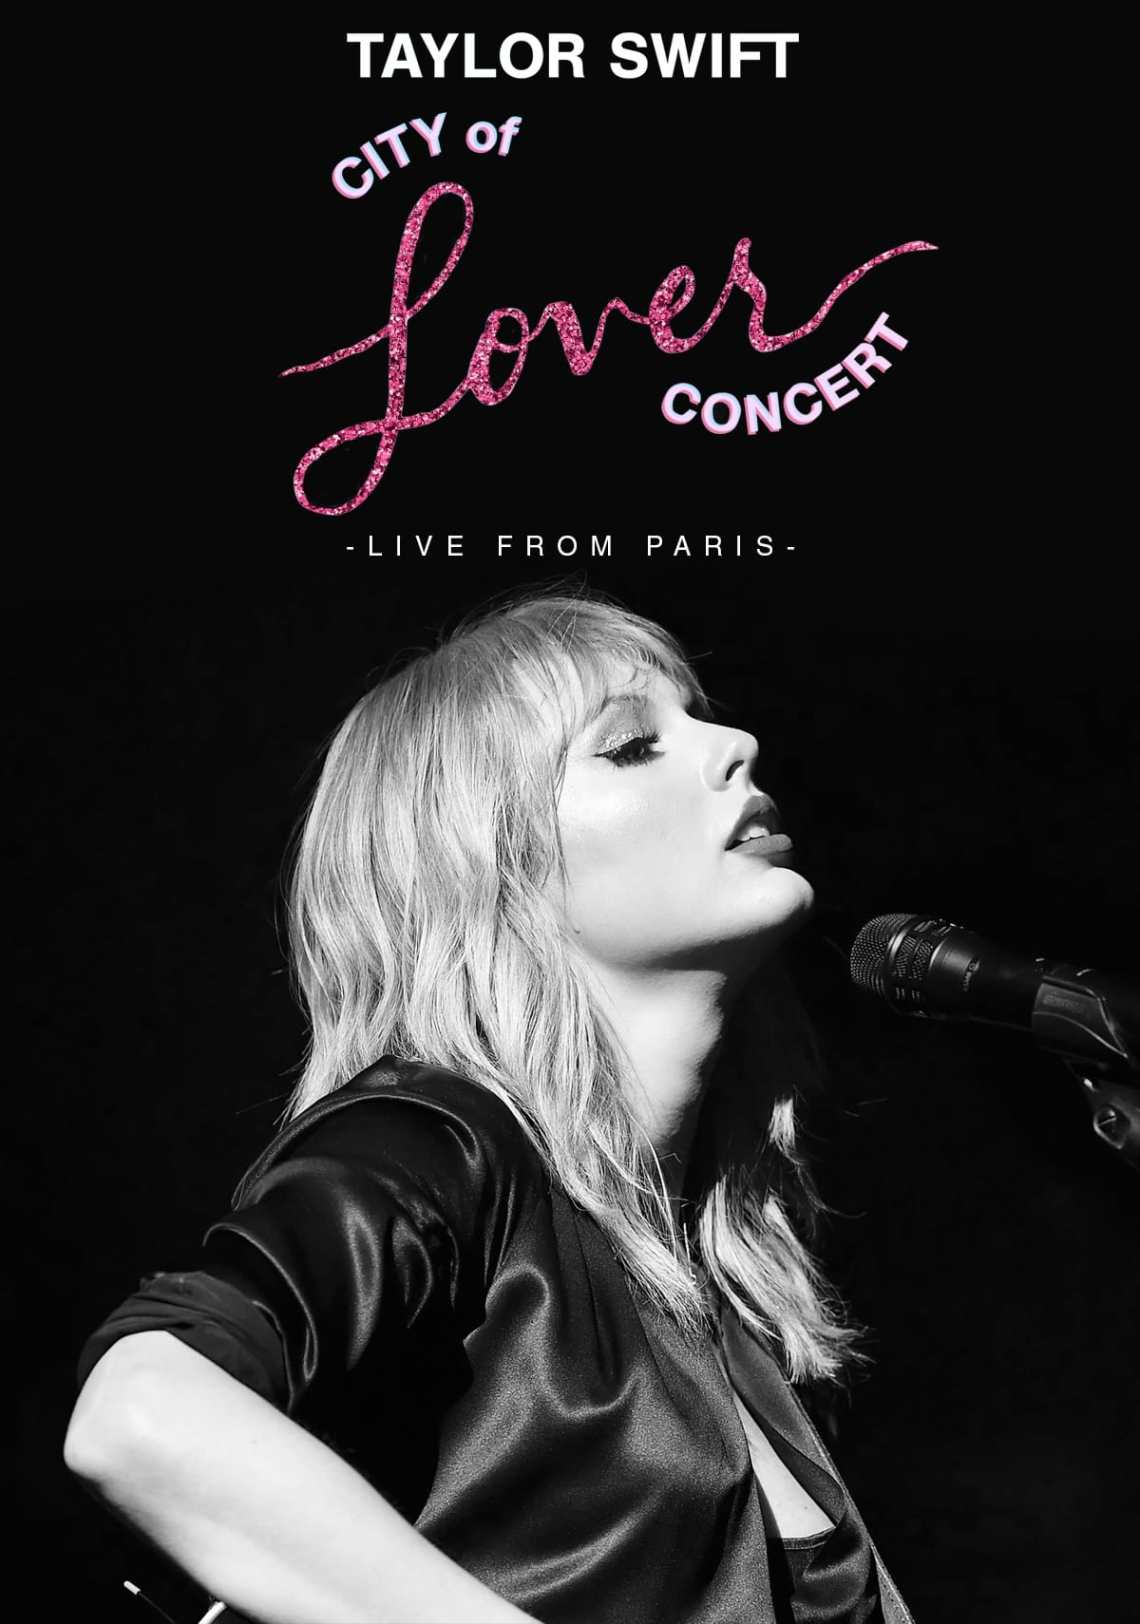 Download Taylor Swift City of Lover Concert (2020) - Posters — The ...